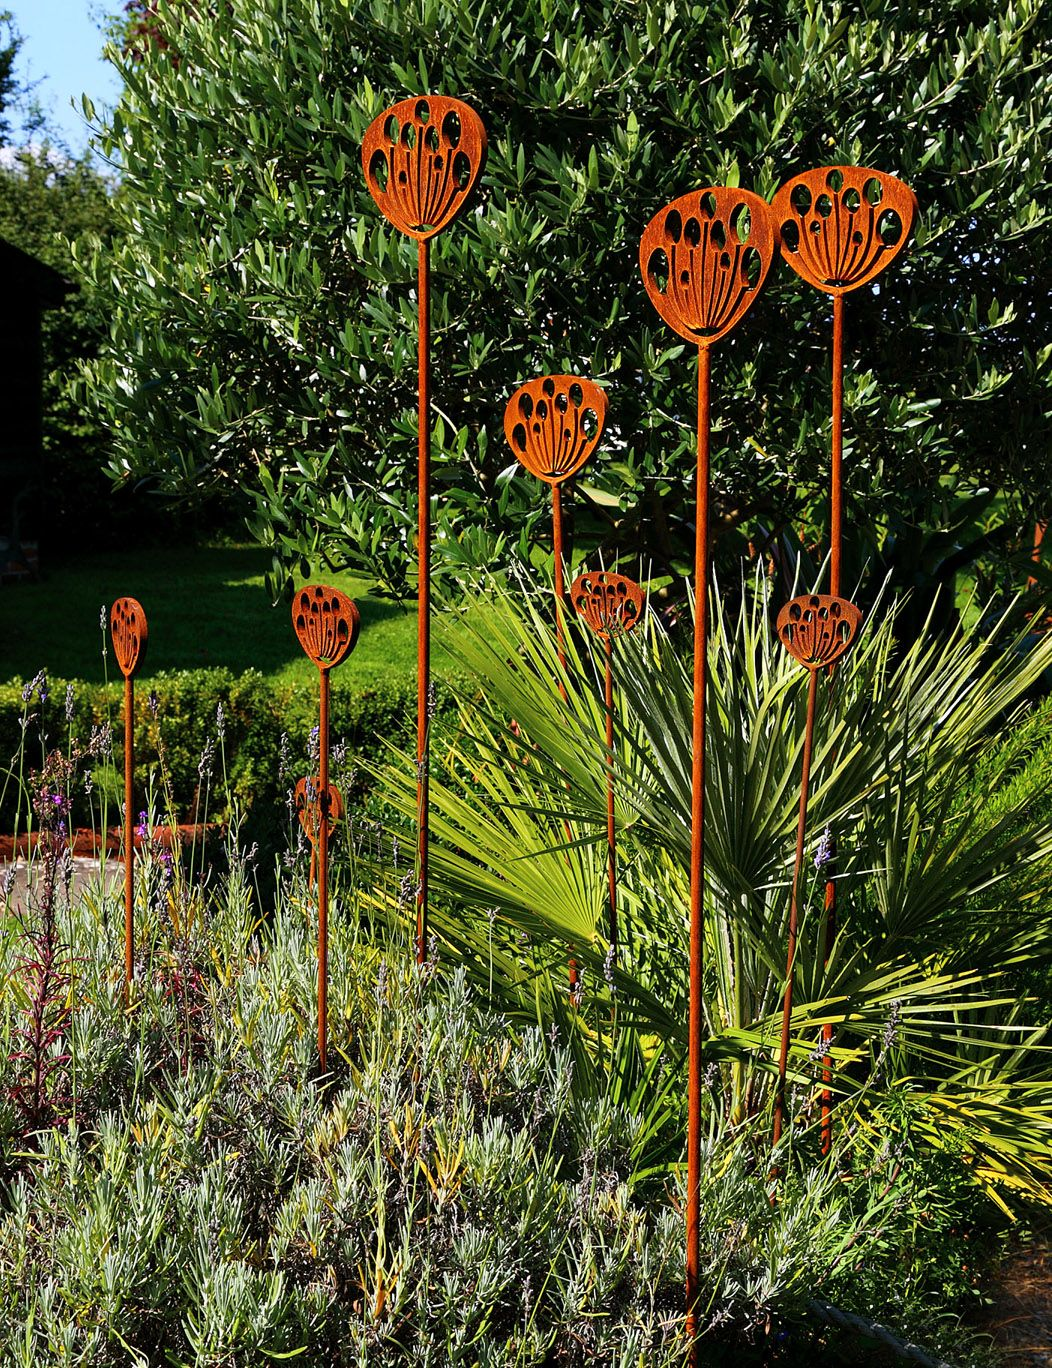 Garden Sculpture Crafted From Rusted Metal, Inspired By The Seed Head Of  The Cow Parsley Plant. As Part Of A Planting Scheme The Sculptures Add Year  Round ...